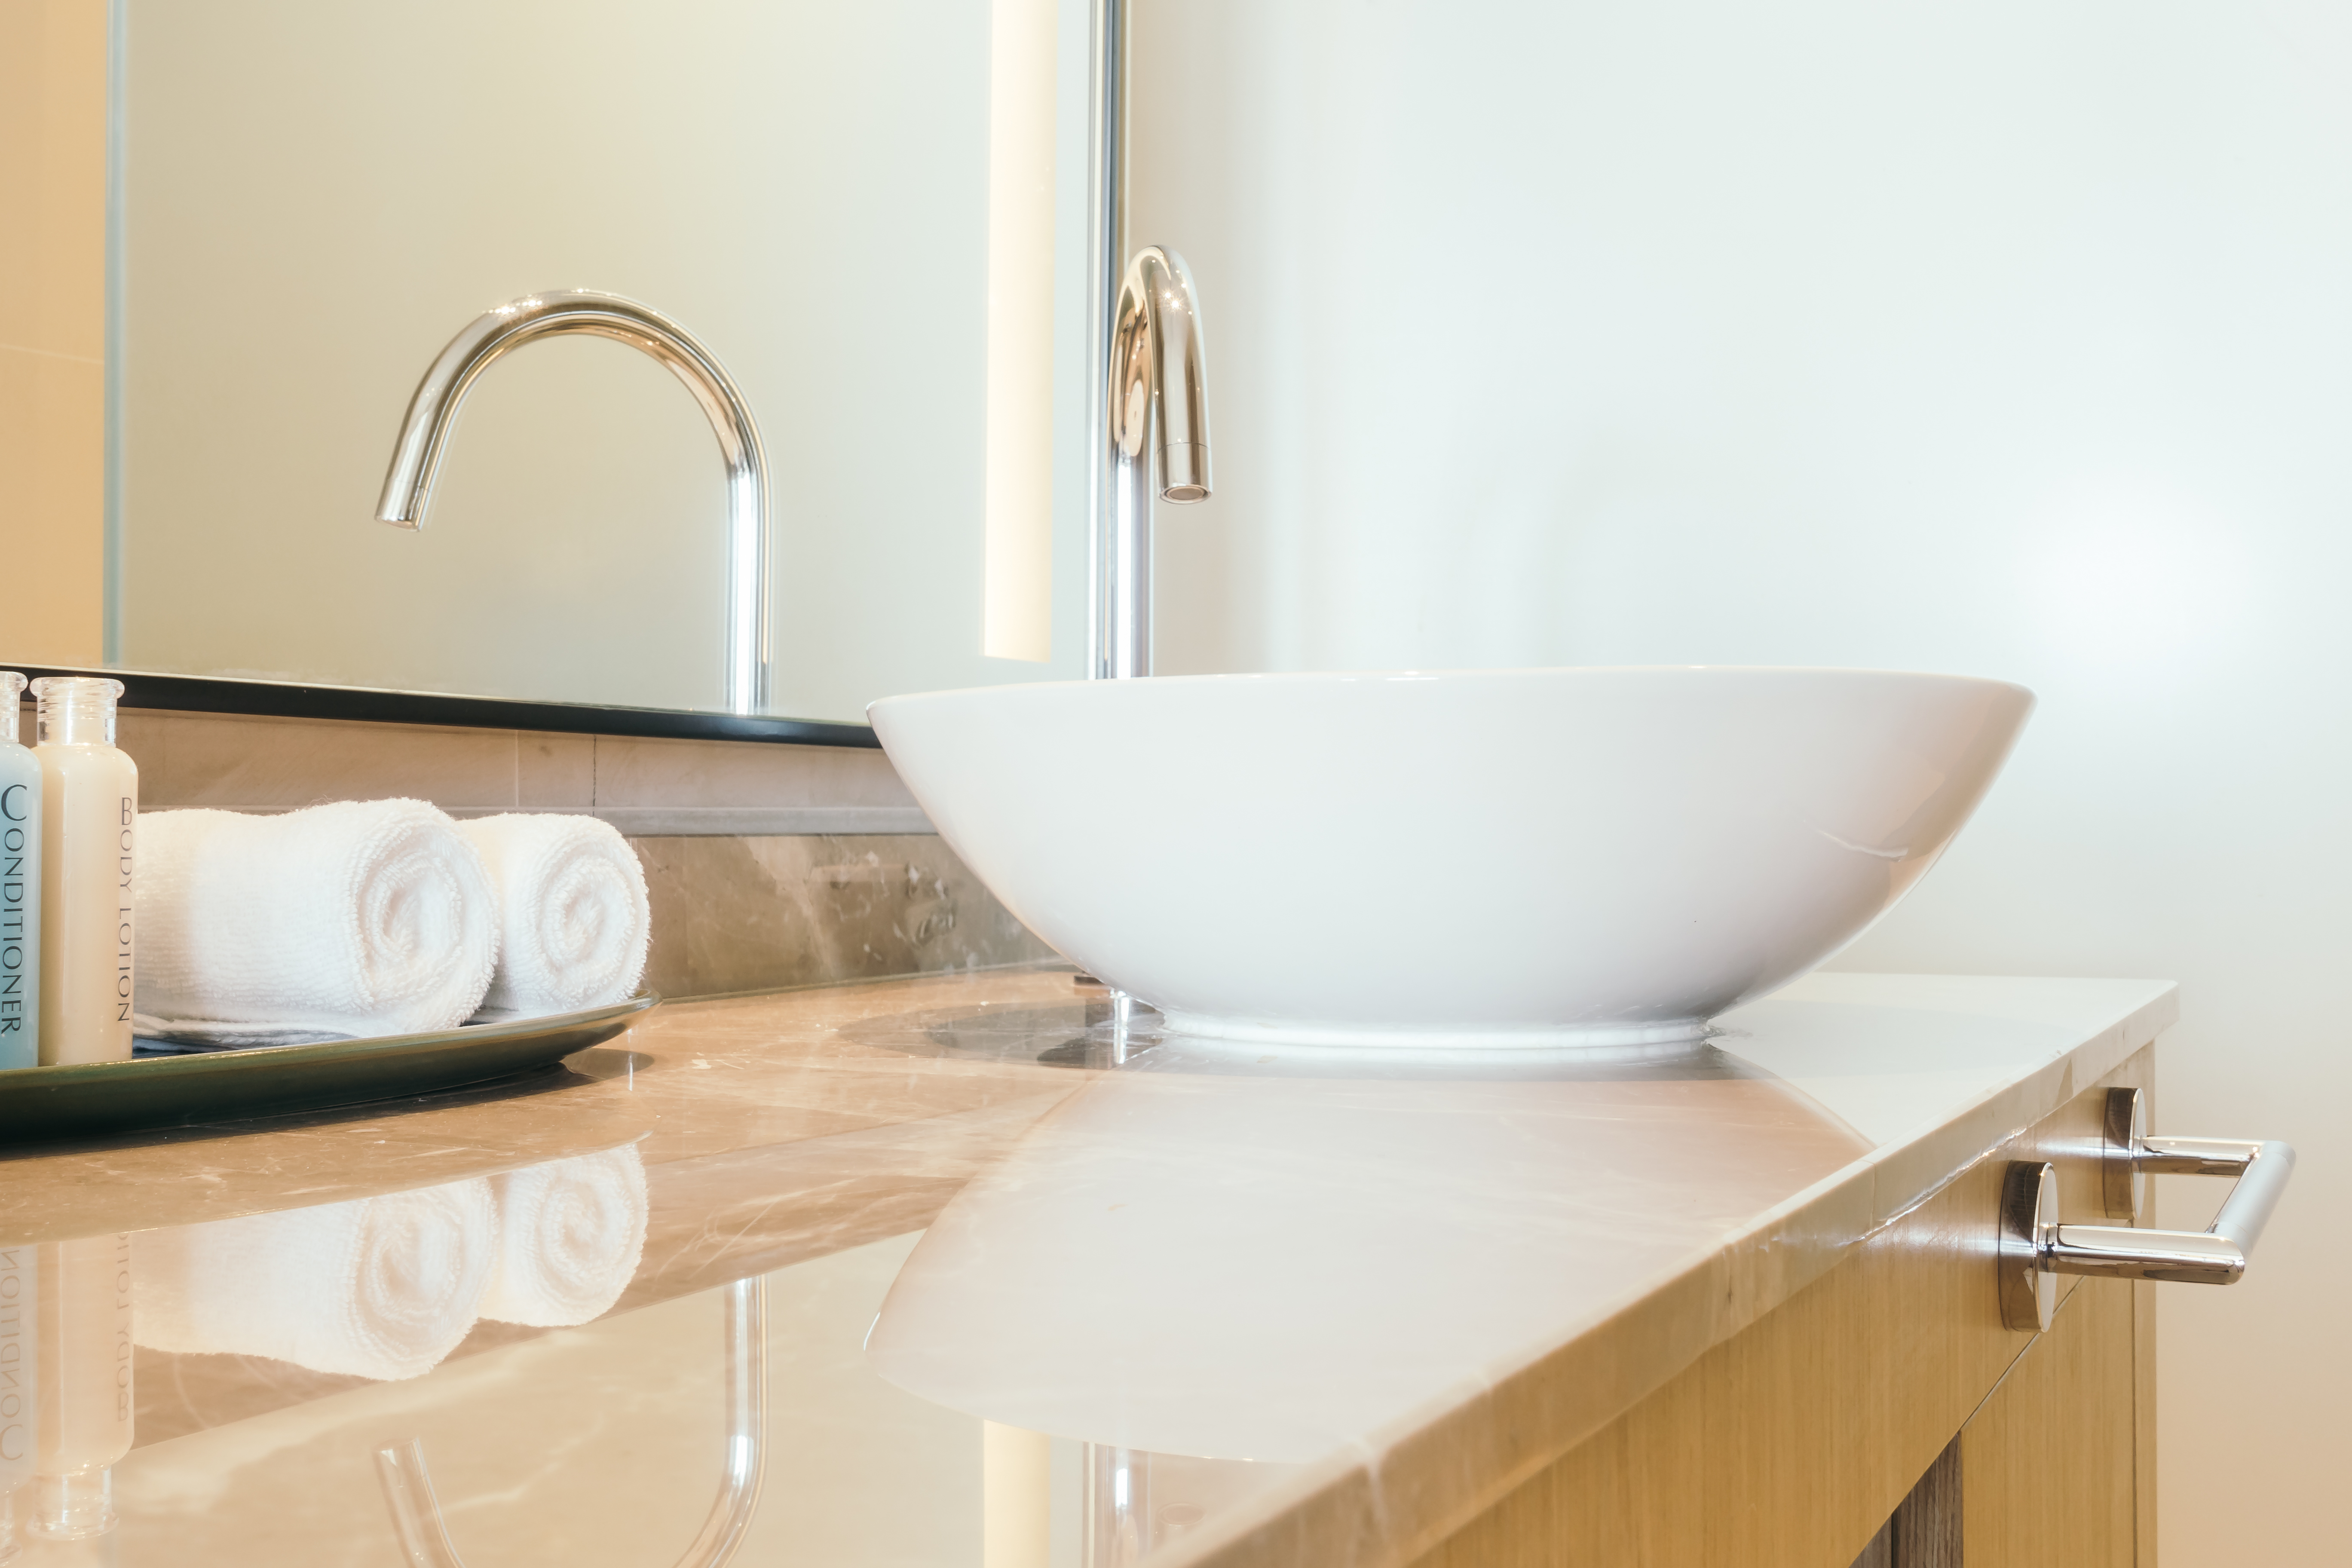 Bathroom Renovation: Why Choose a Specialist? - Bathroom ...